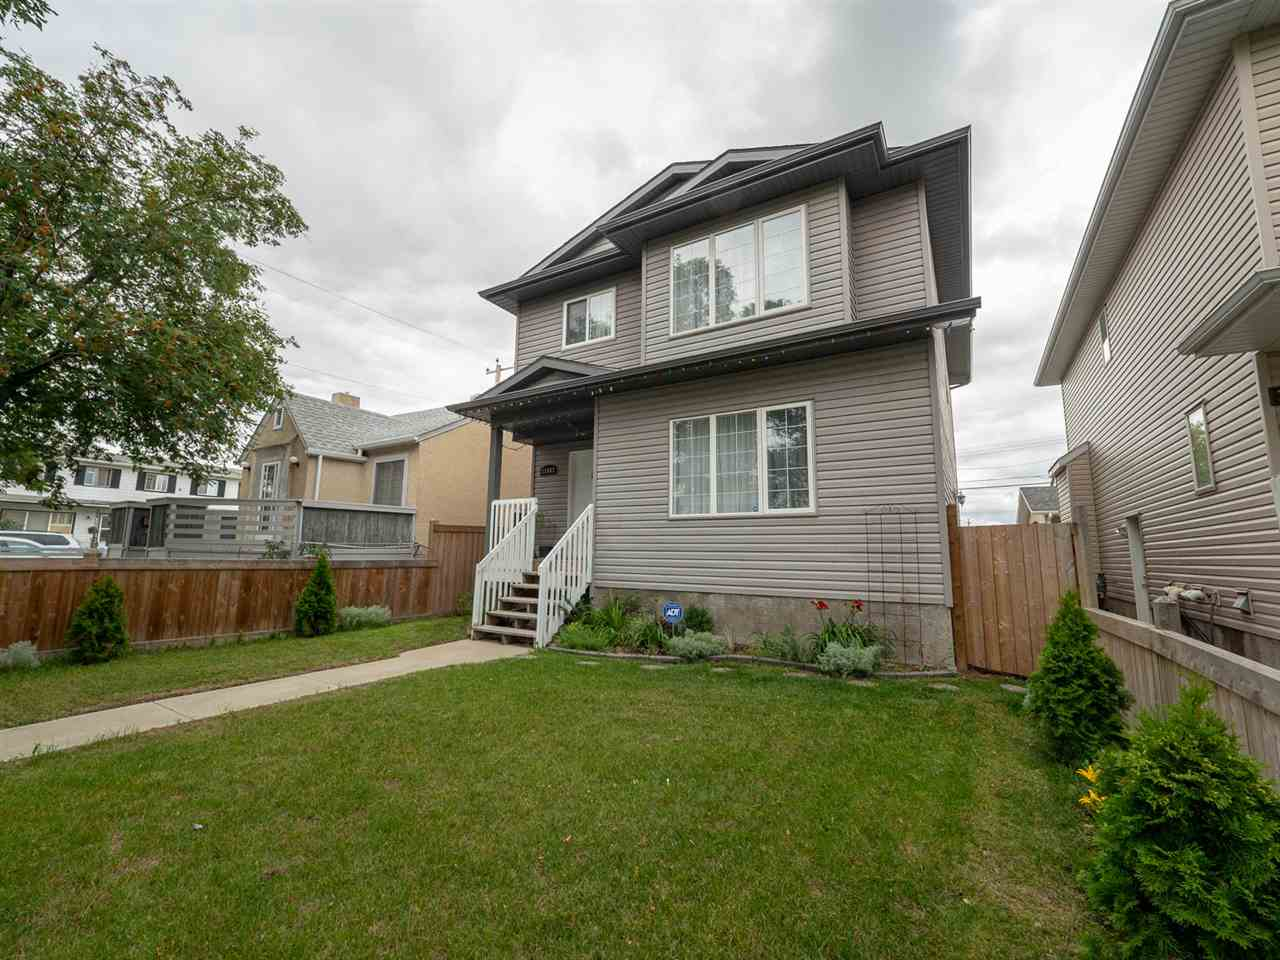 Main Photo: 11643 81 Street NW in Edmonton: Zone 05 House for sale : MLS®# E4122767